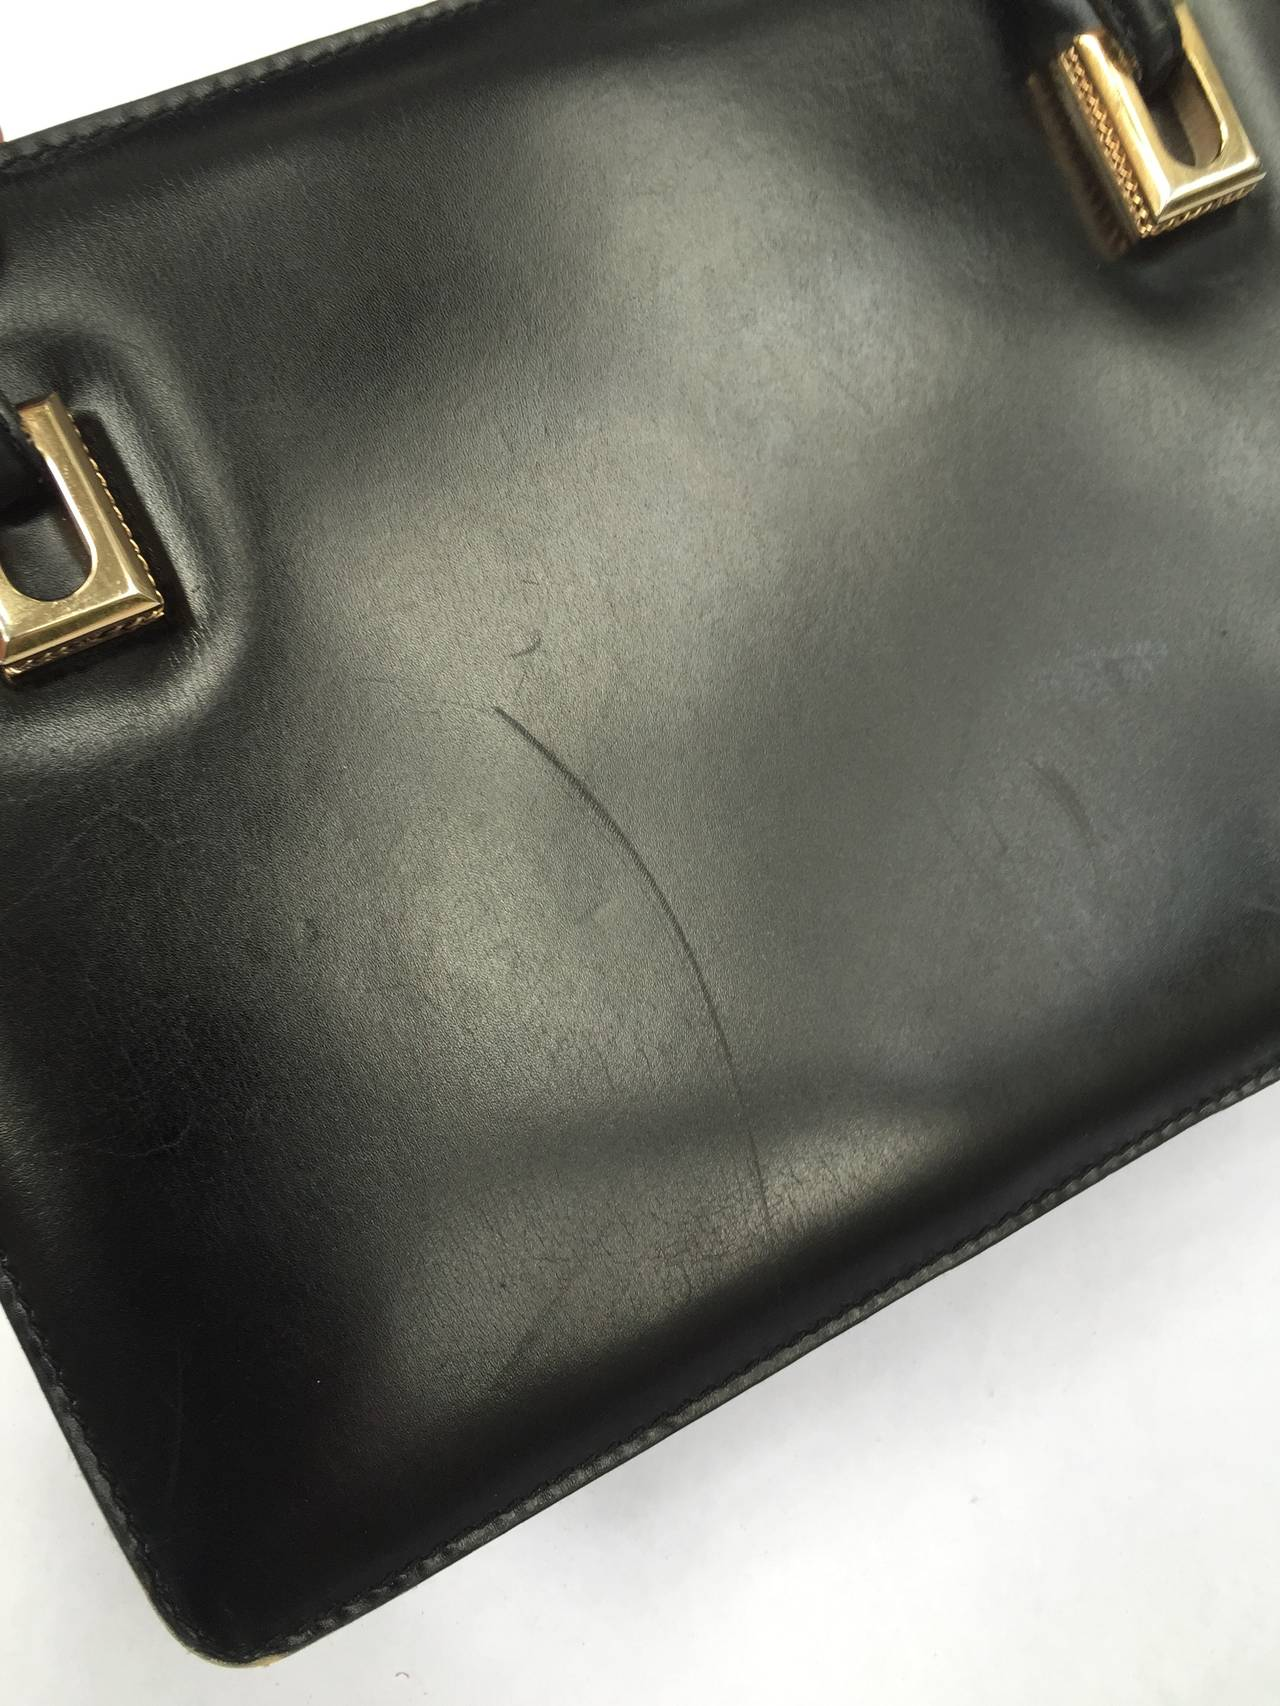 Loewe 1960s black leather handbag. Classic & iconic Loewe vintage black leather handbag has outer side compartments. Interior compartments have extra space and zipper compartment.